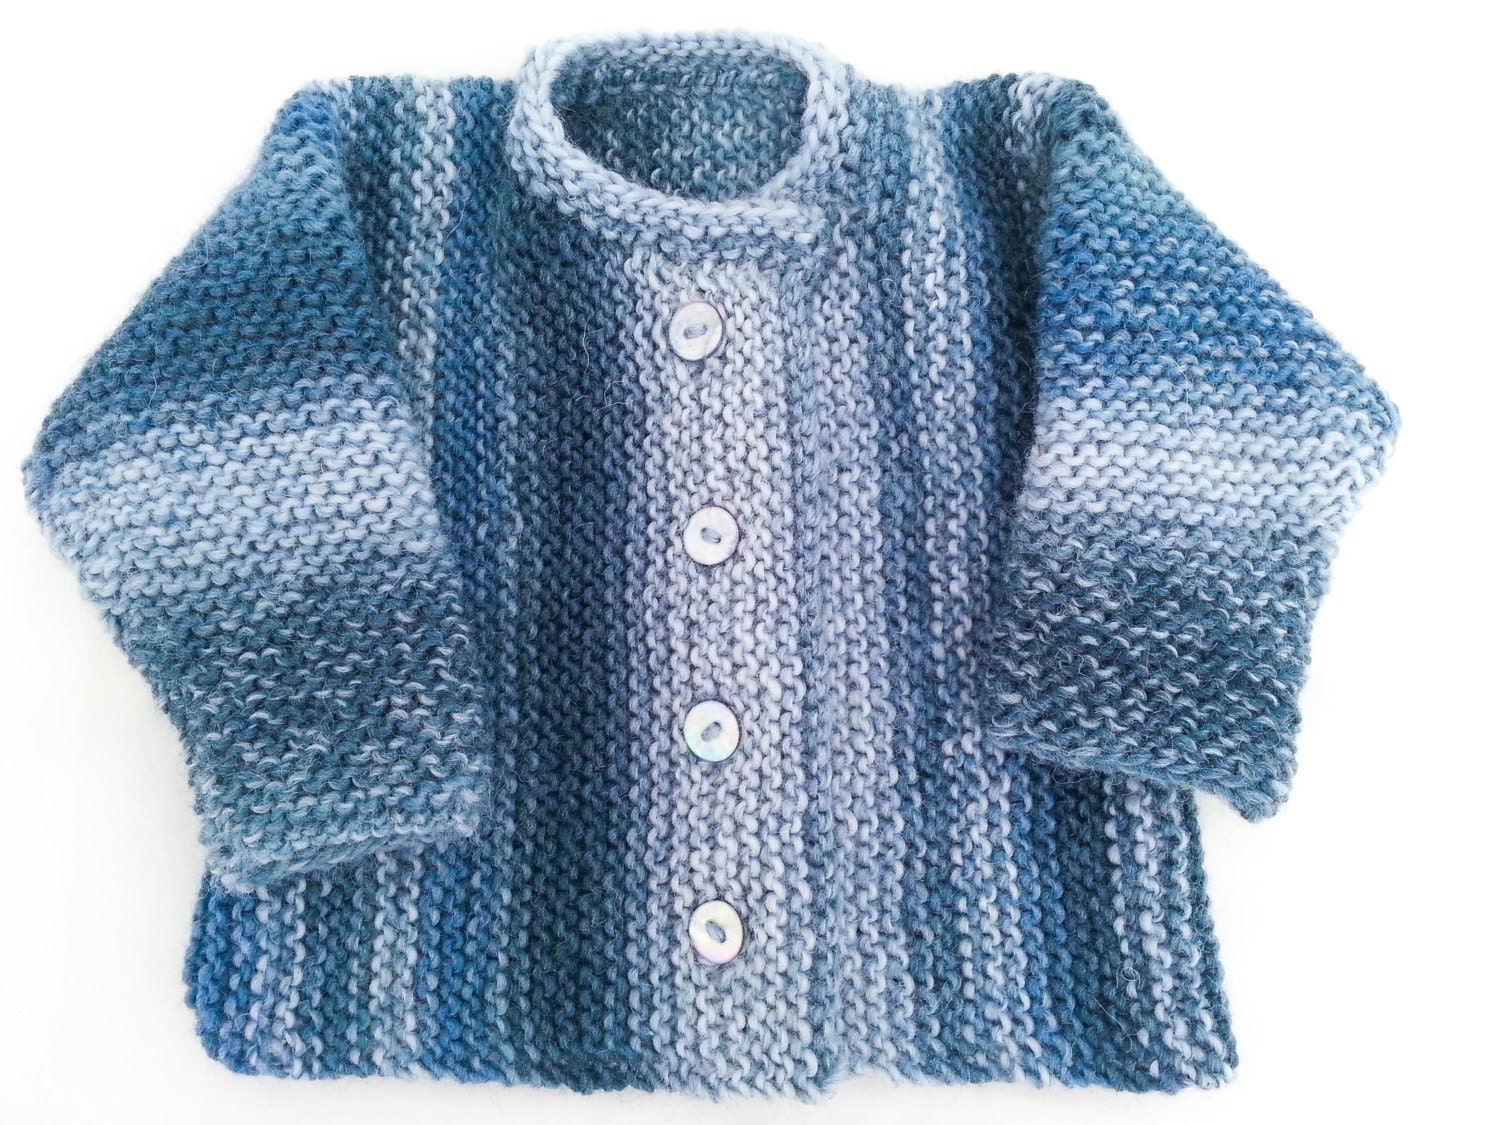 Knitting Stitches For Baby Sweaters : KNITTING PATTERN Garter Stitch Baby Cardigan Baby Sweater